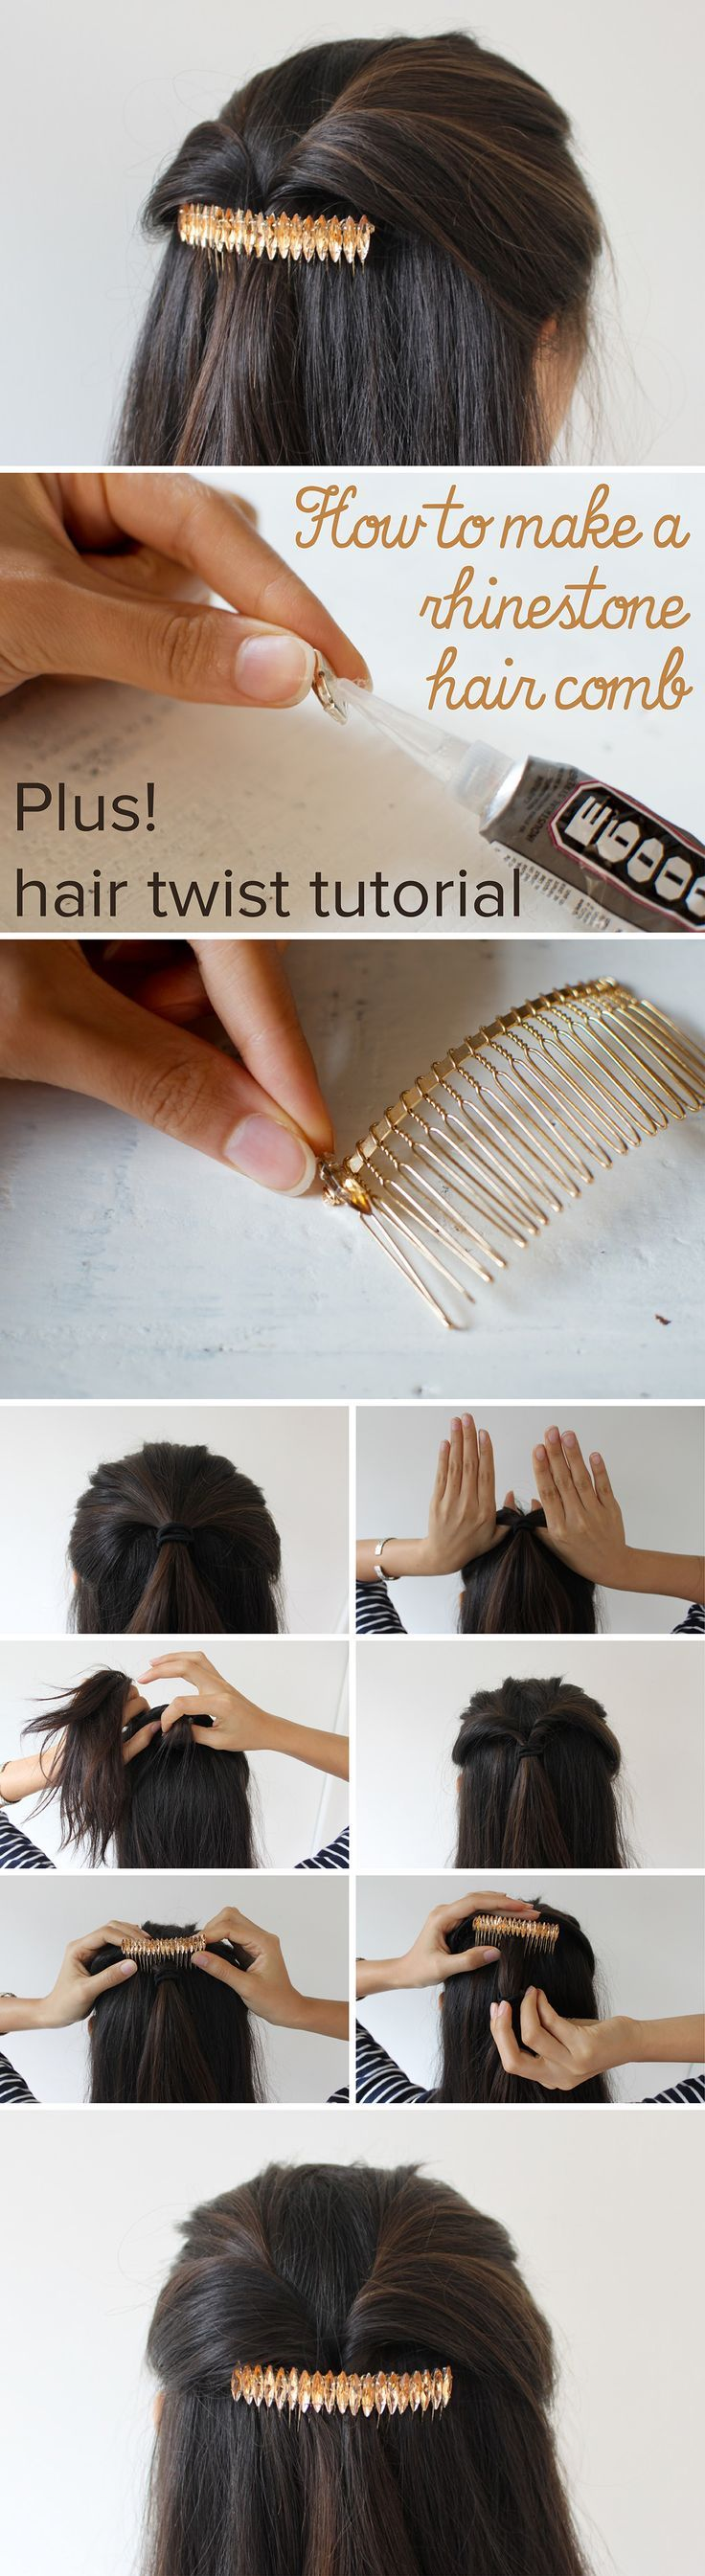 436 best diy hair comb images on pinterest | headgear, crowns and